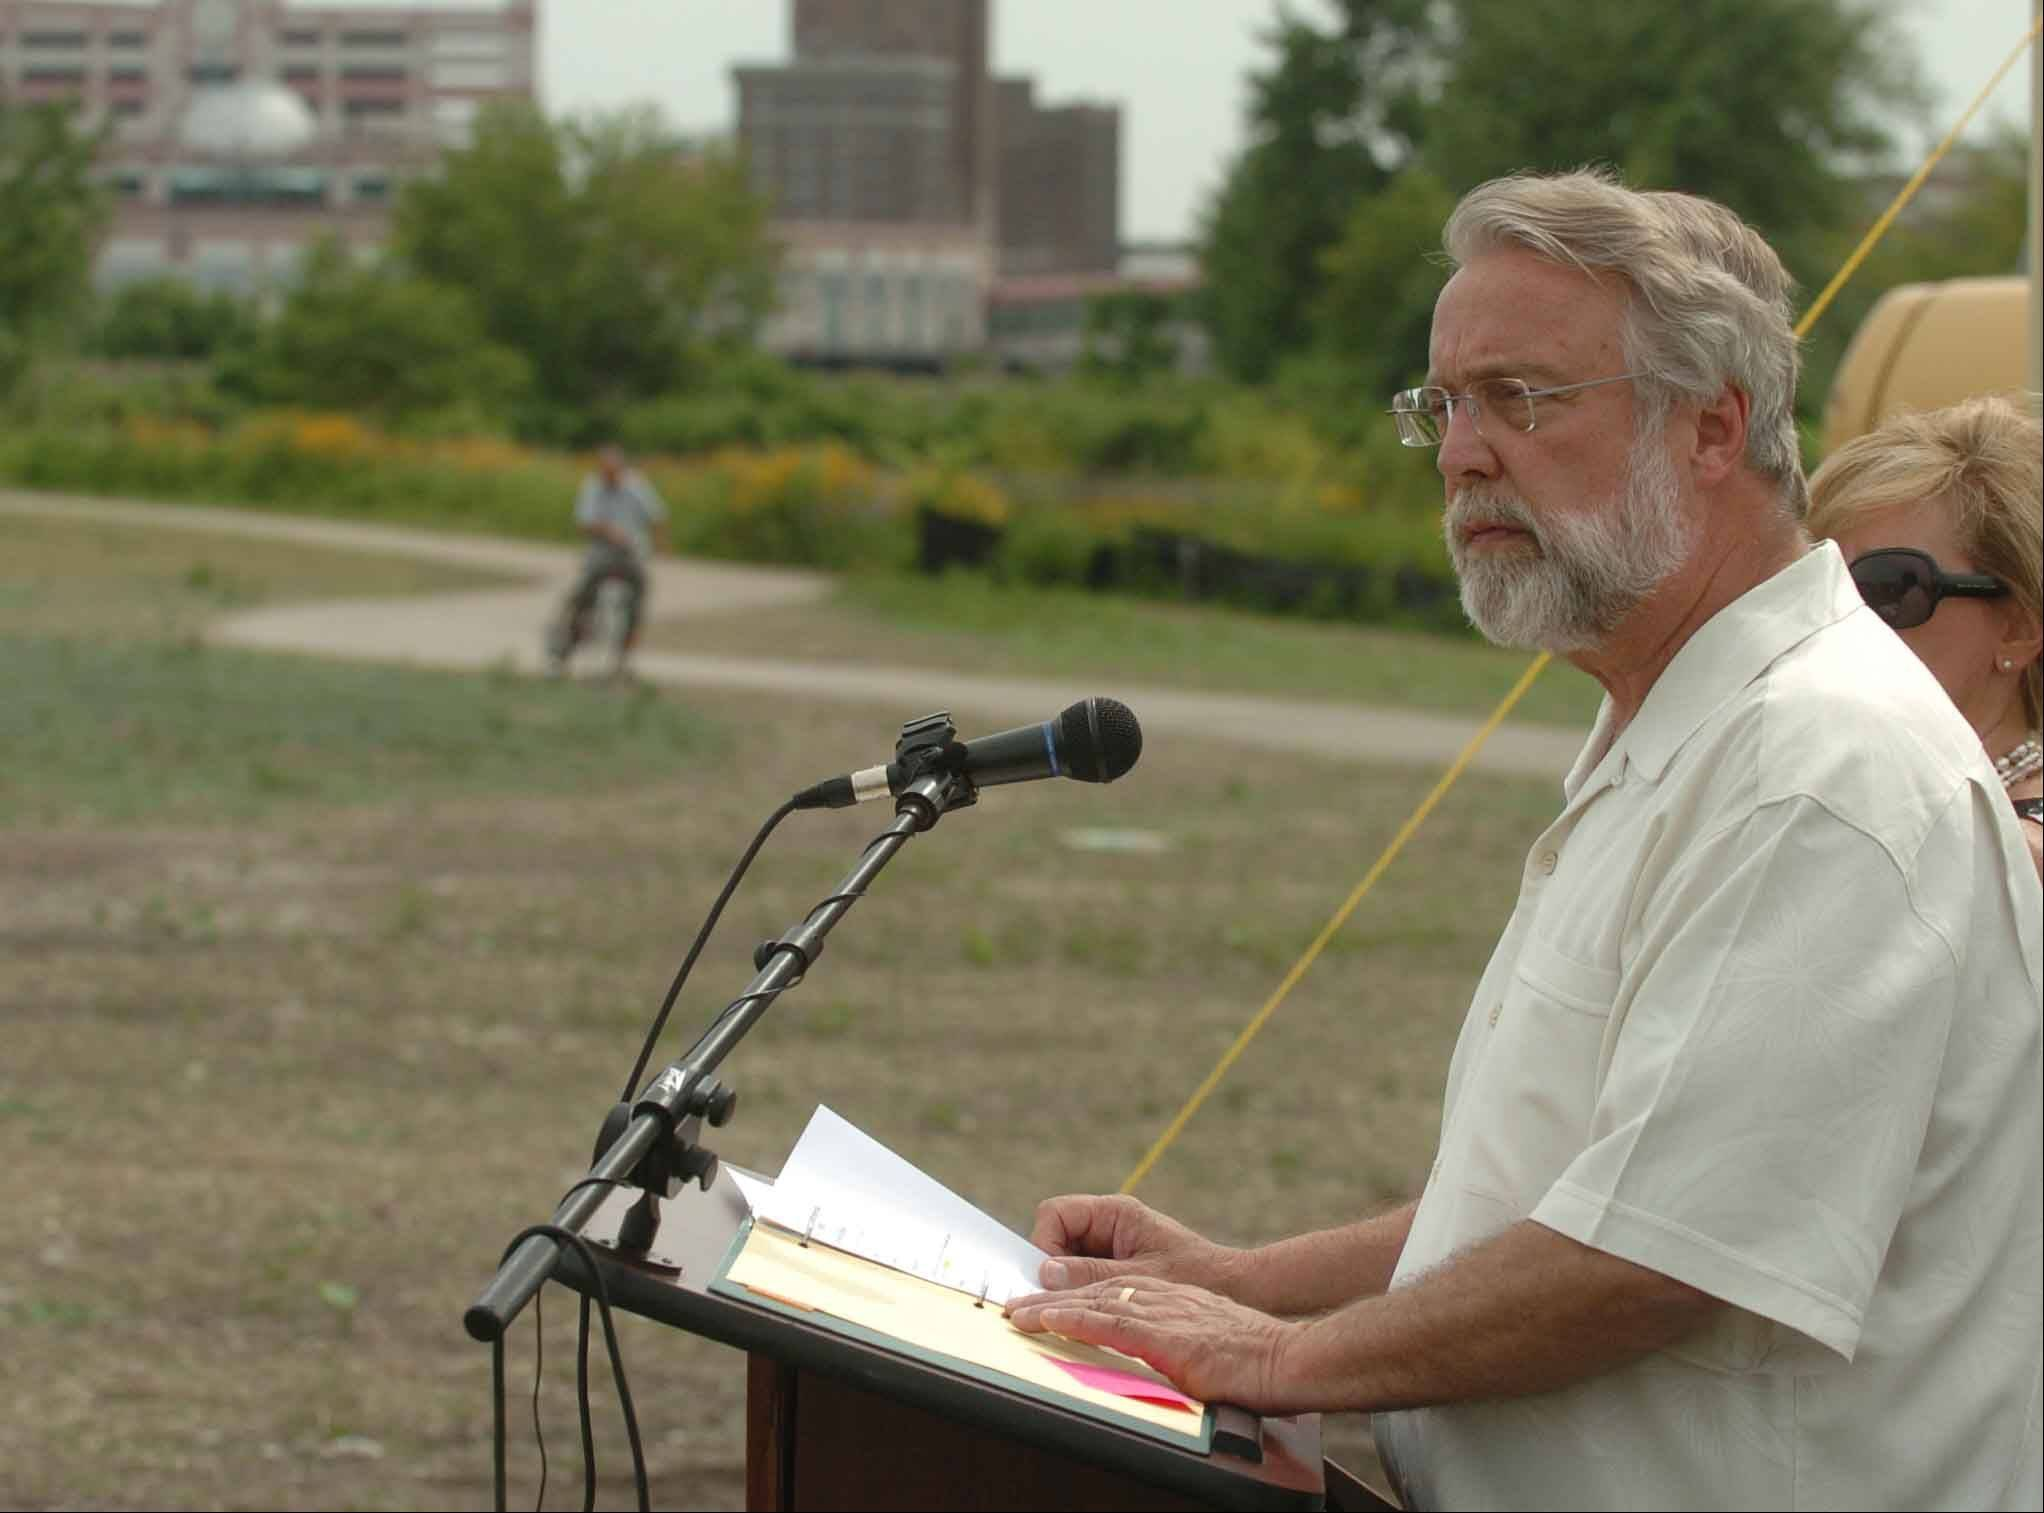 Aurora Mayor Tom Weisner speaks Friday at the future site of RiverEdge Park. Construction is set to begin by July 20.